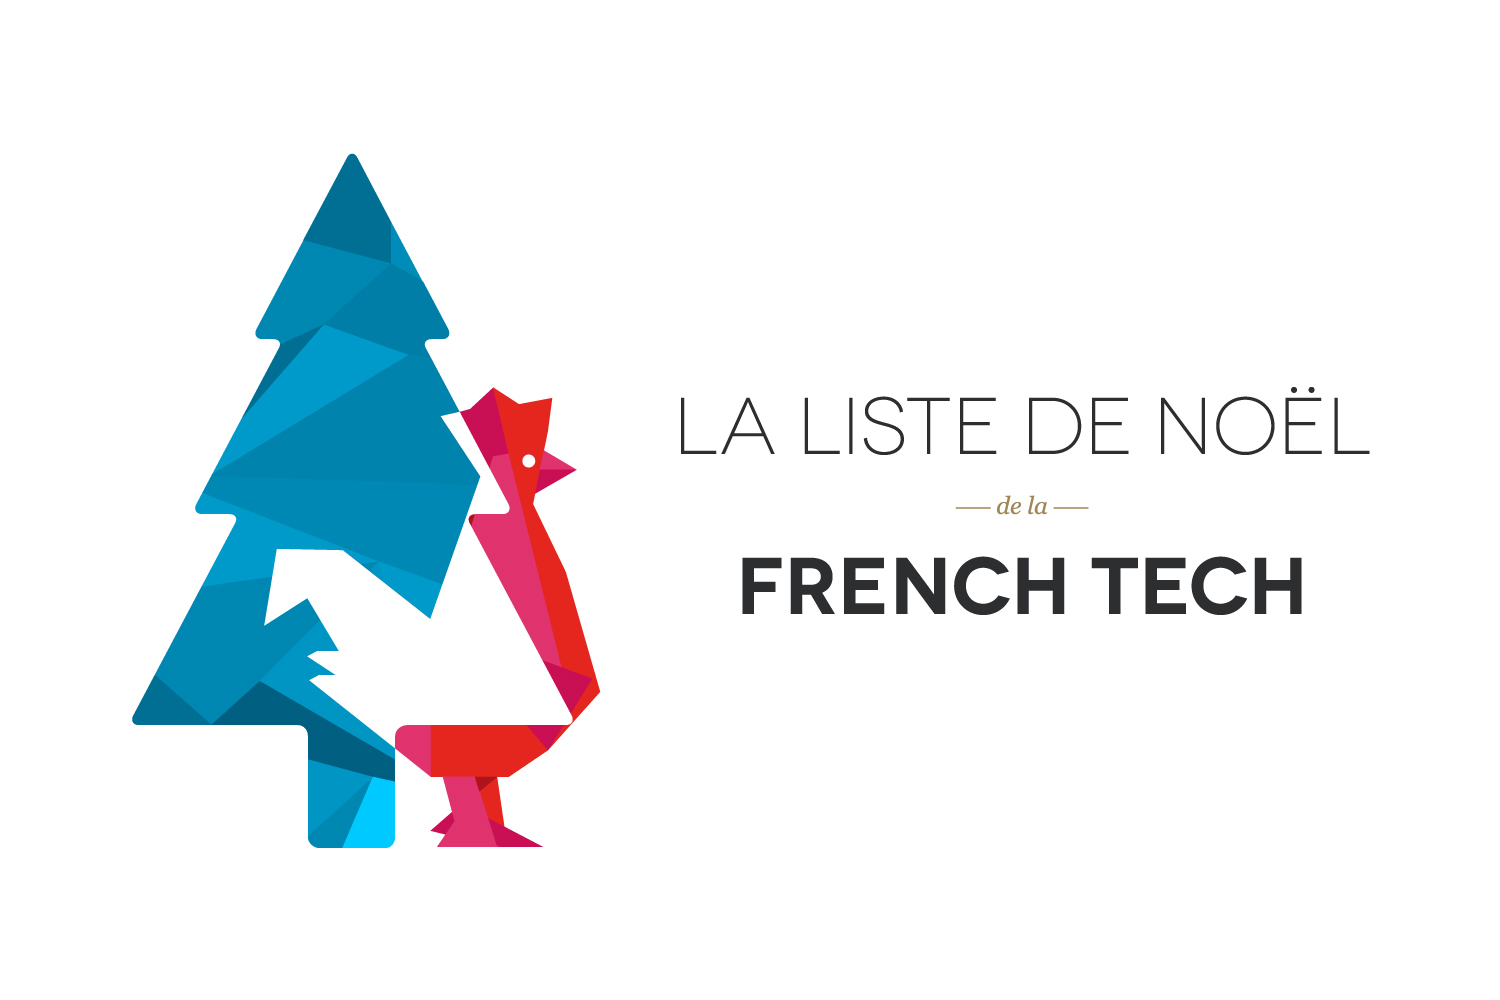 Walleriana sur la liste de Noël de la French Tech